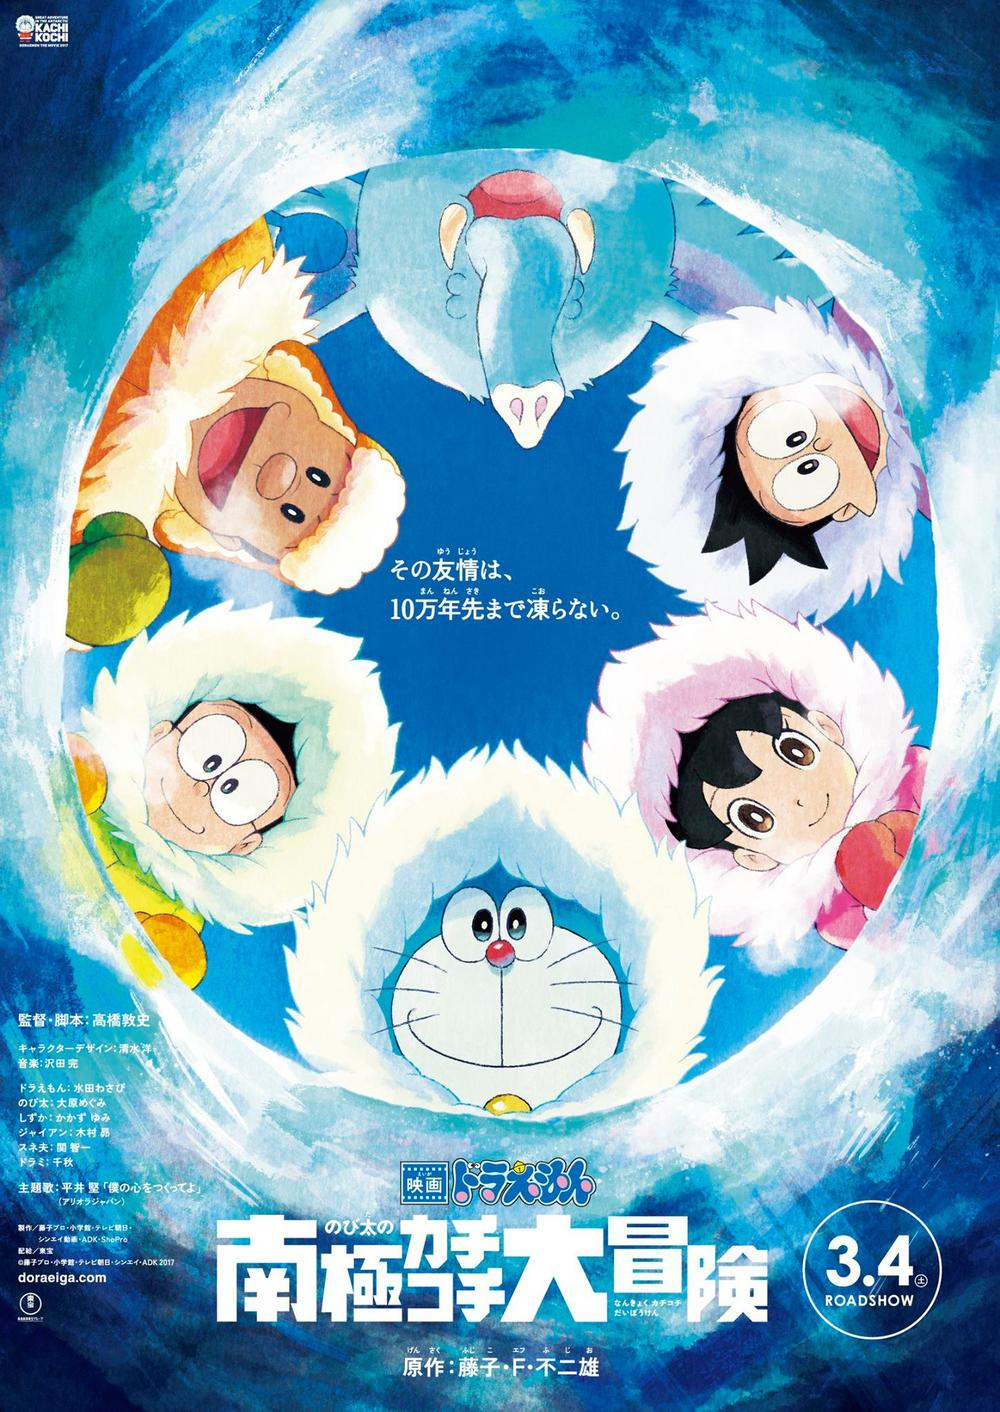 5. Doraemon The Movie 2017: Great Adventure In The Antarctic Kachi Kochi